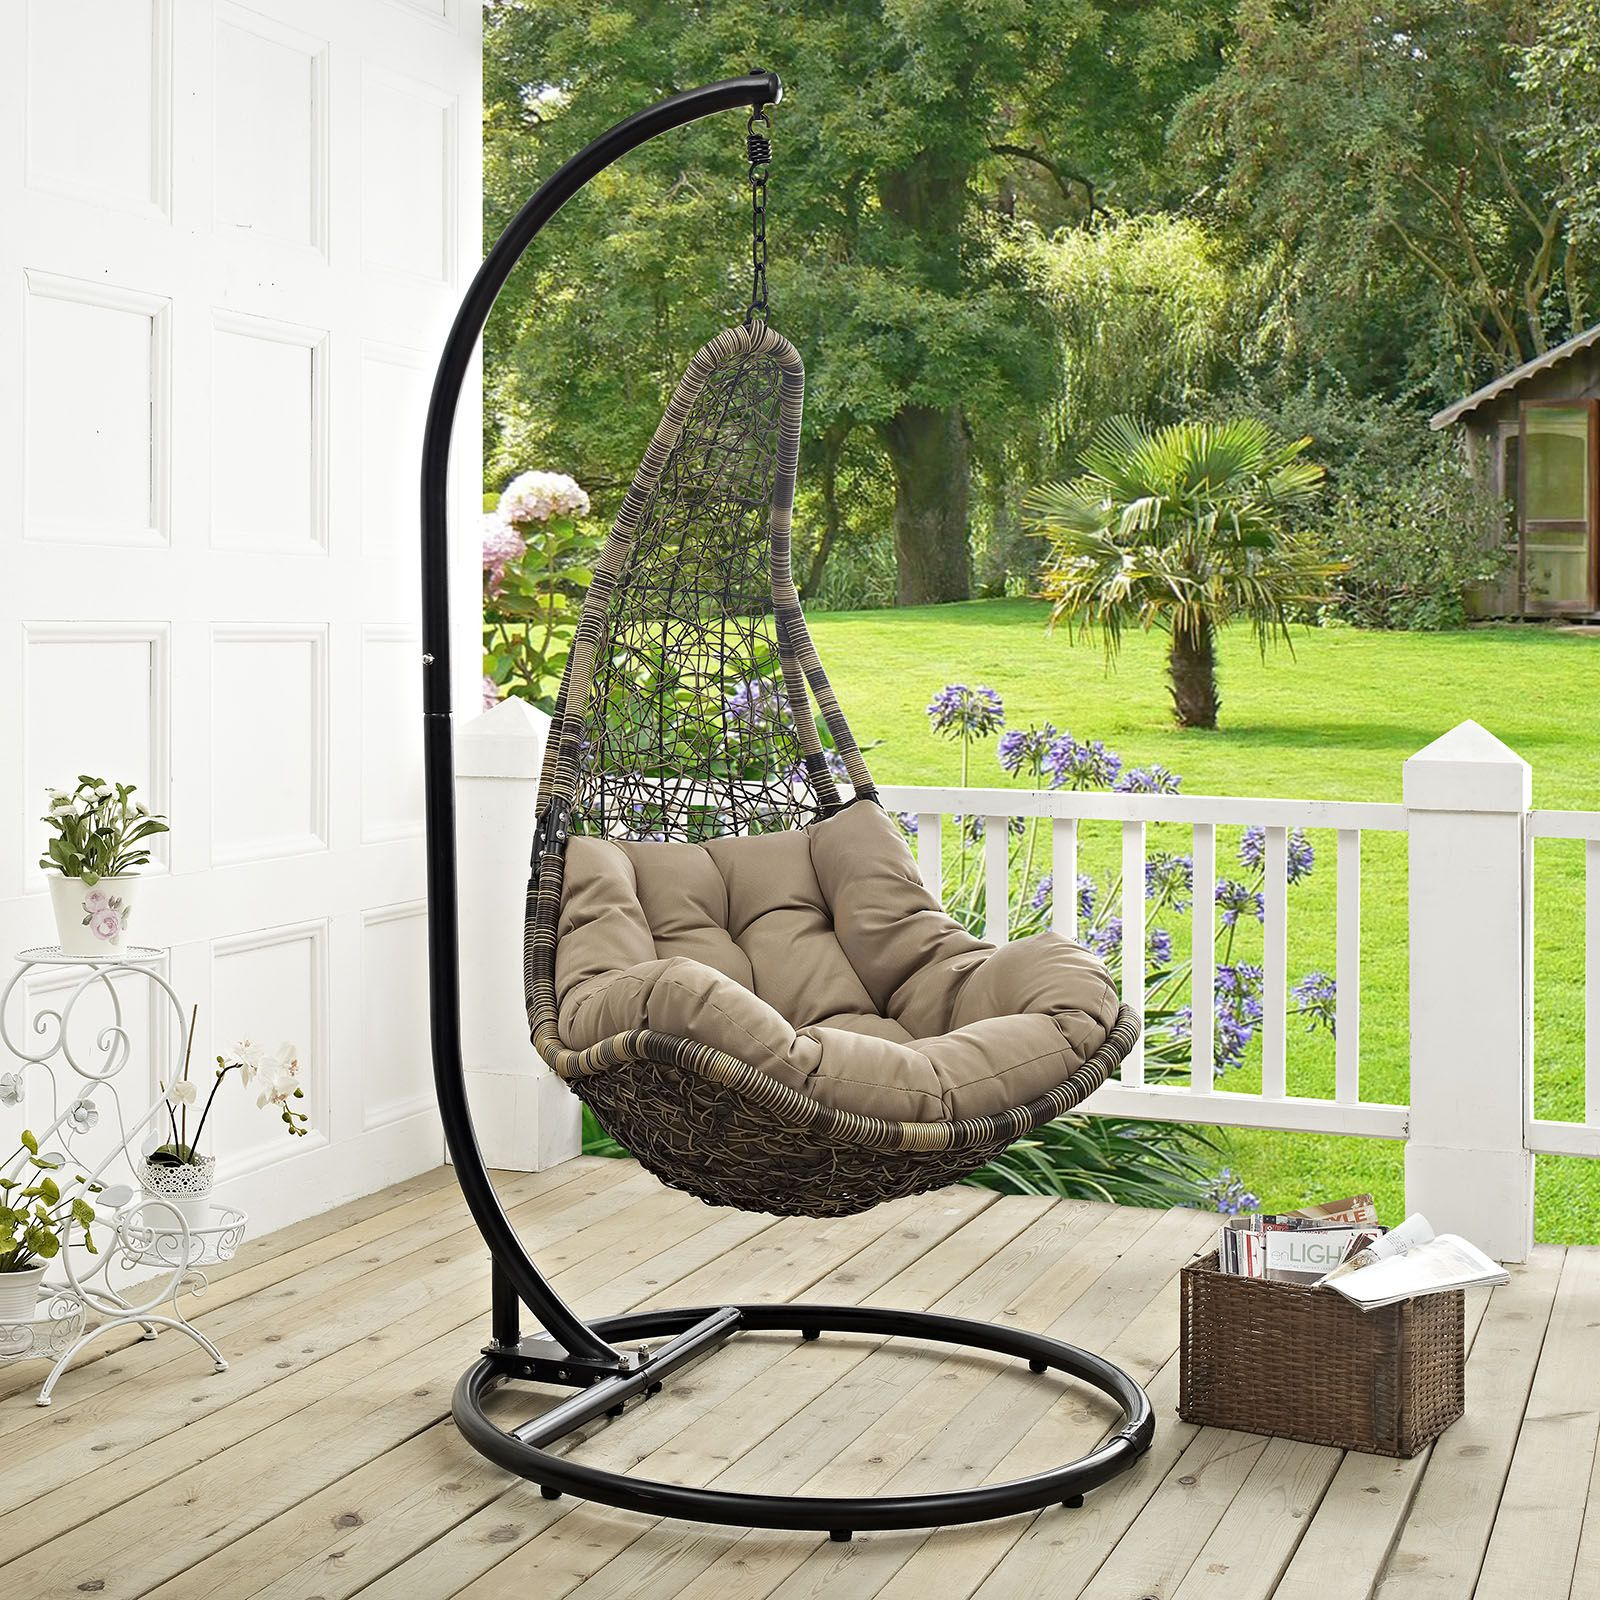 Modway Furniture Abate Outdoor Patio Swing Chair | Patio swing chair, Patio swing, Outdoor patio swing